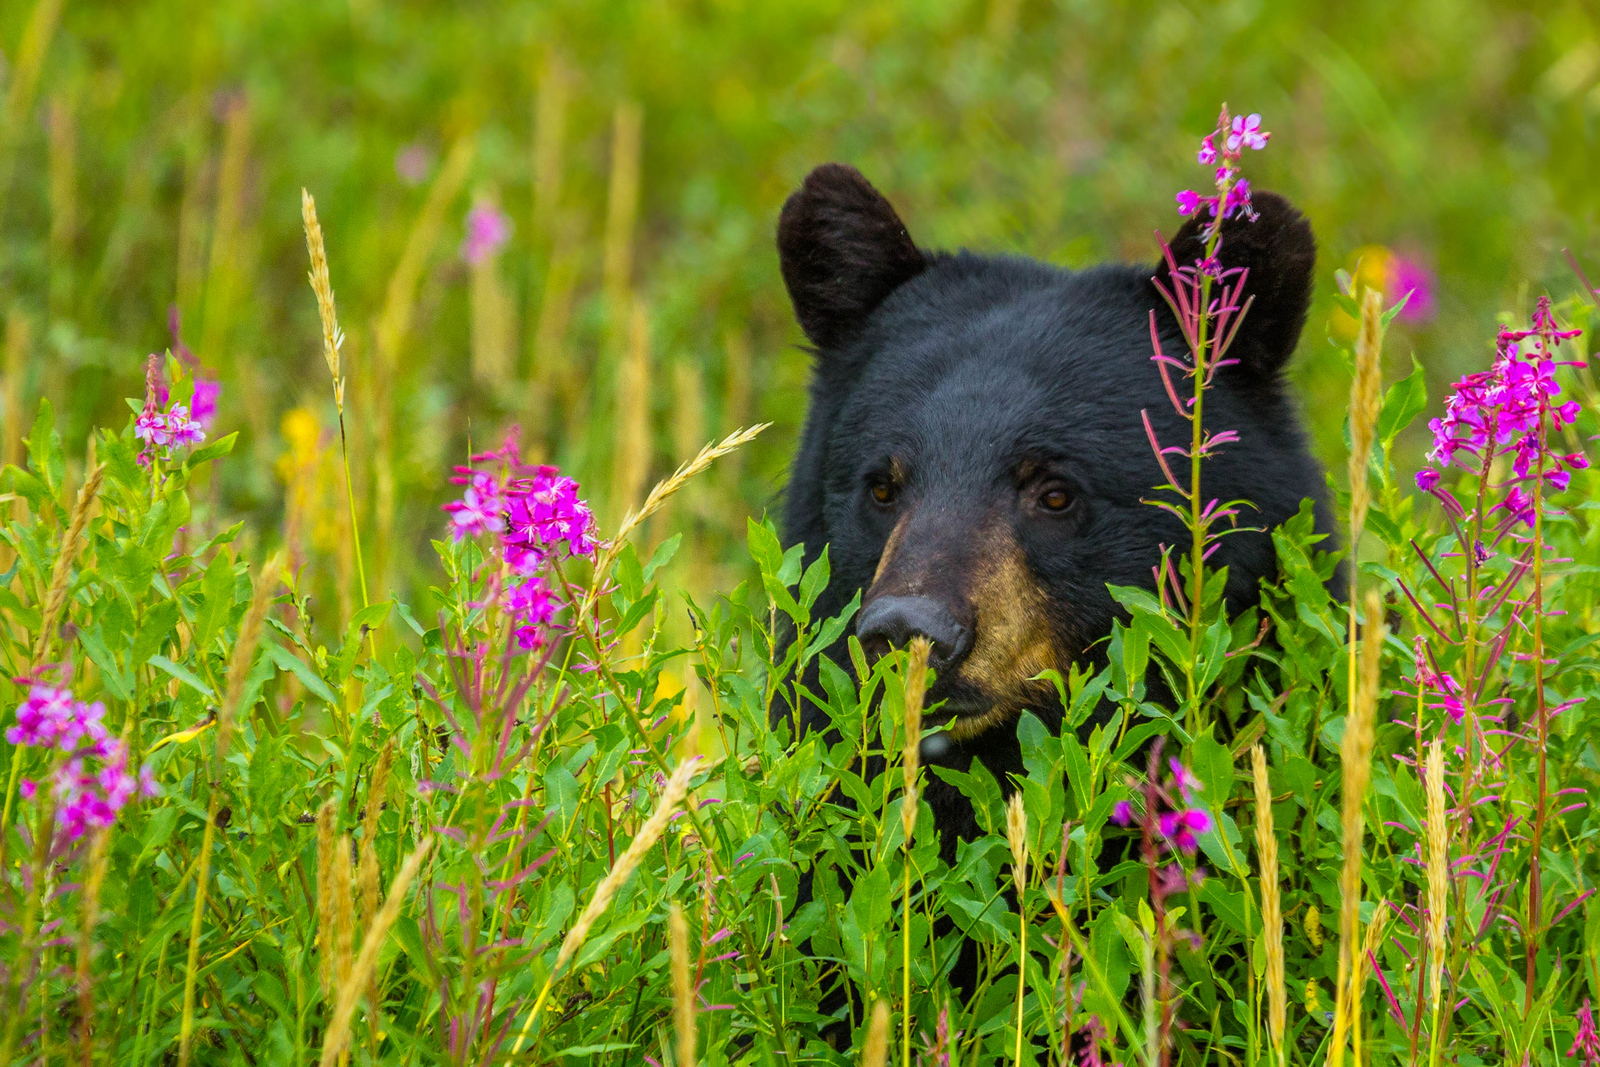 Black bears in Manitoba, Canada